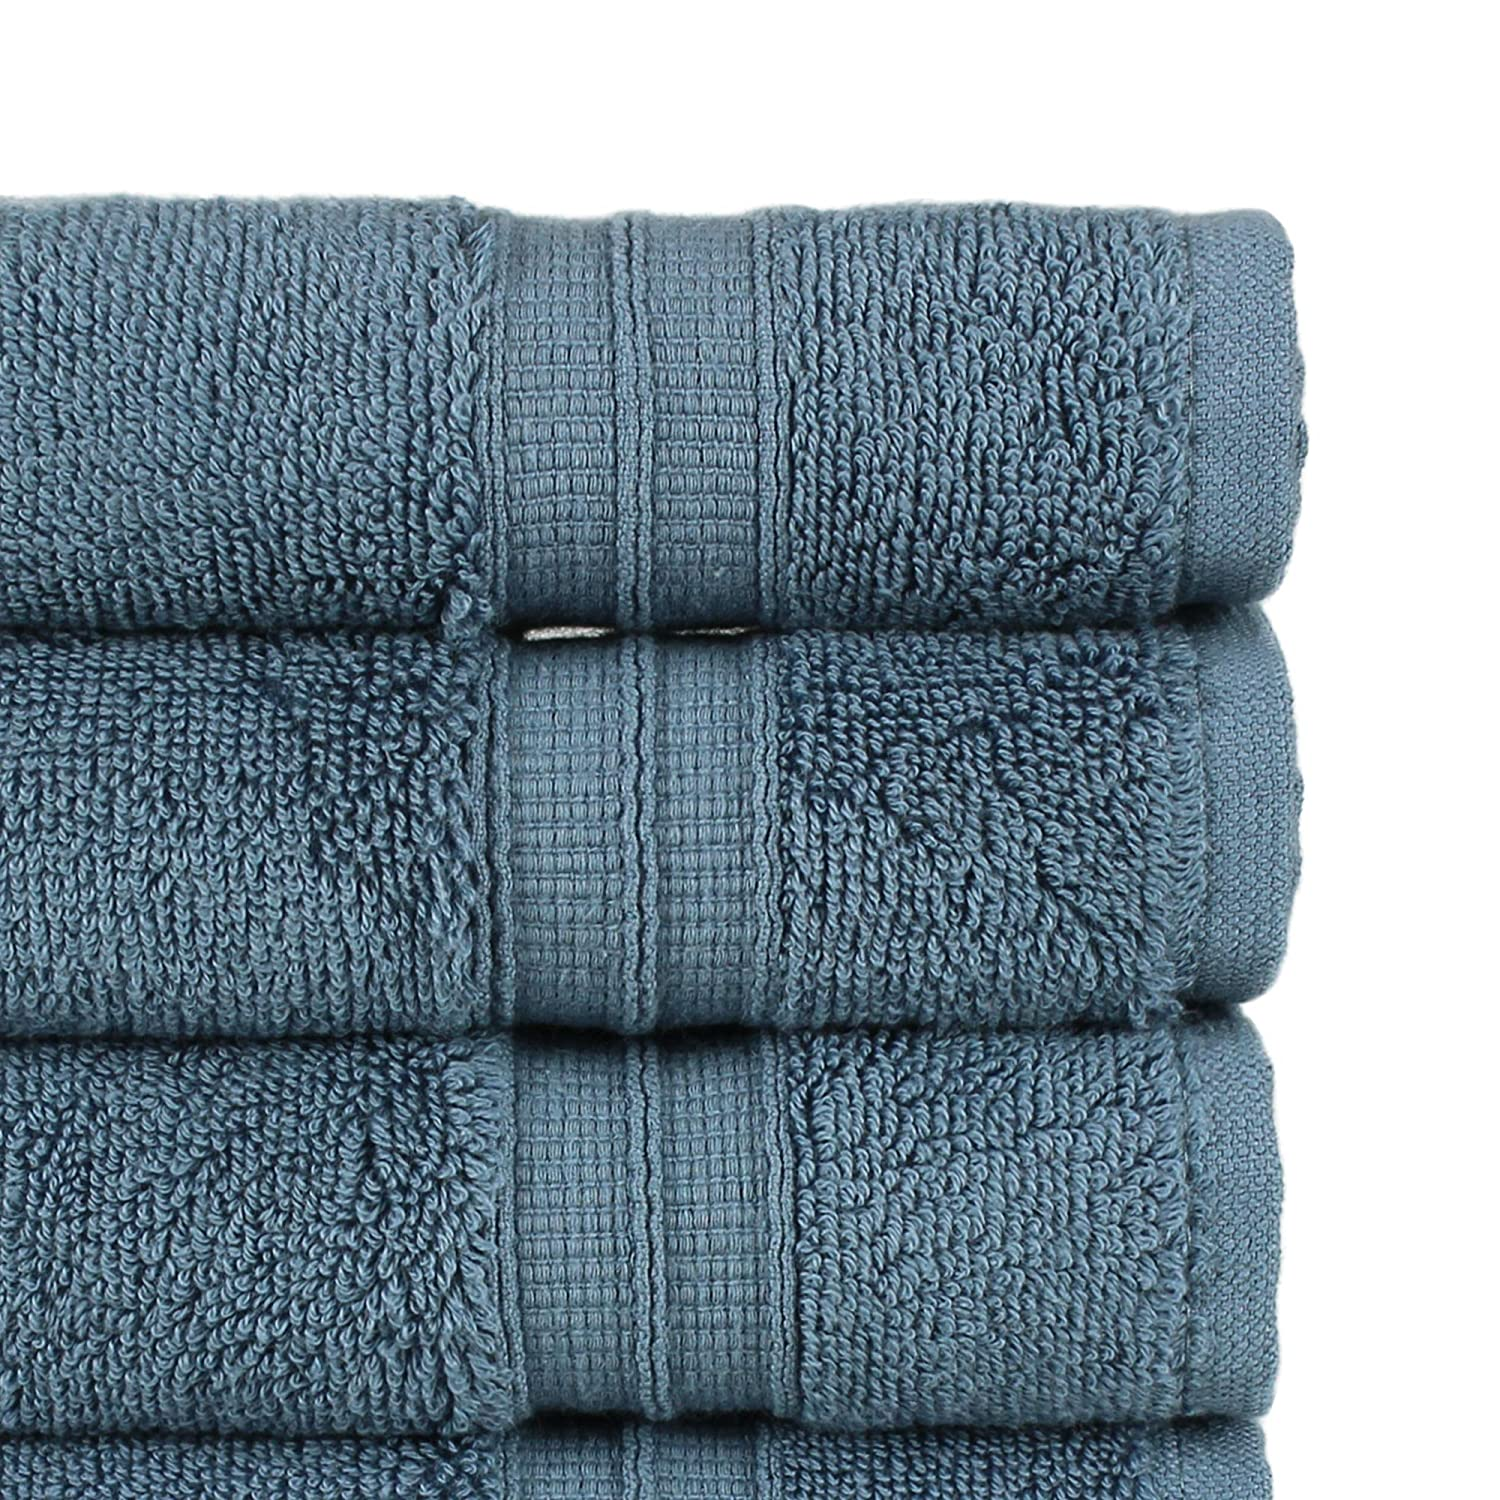 Aqua Blue Long-Stable 20//2 2 Ply Turkish Ring-Spun Cotton Yarn Makes The Luxe-Factor Luxury Premium Turkish Cotton 6-Piece Hand Towels Eco-Friendly,